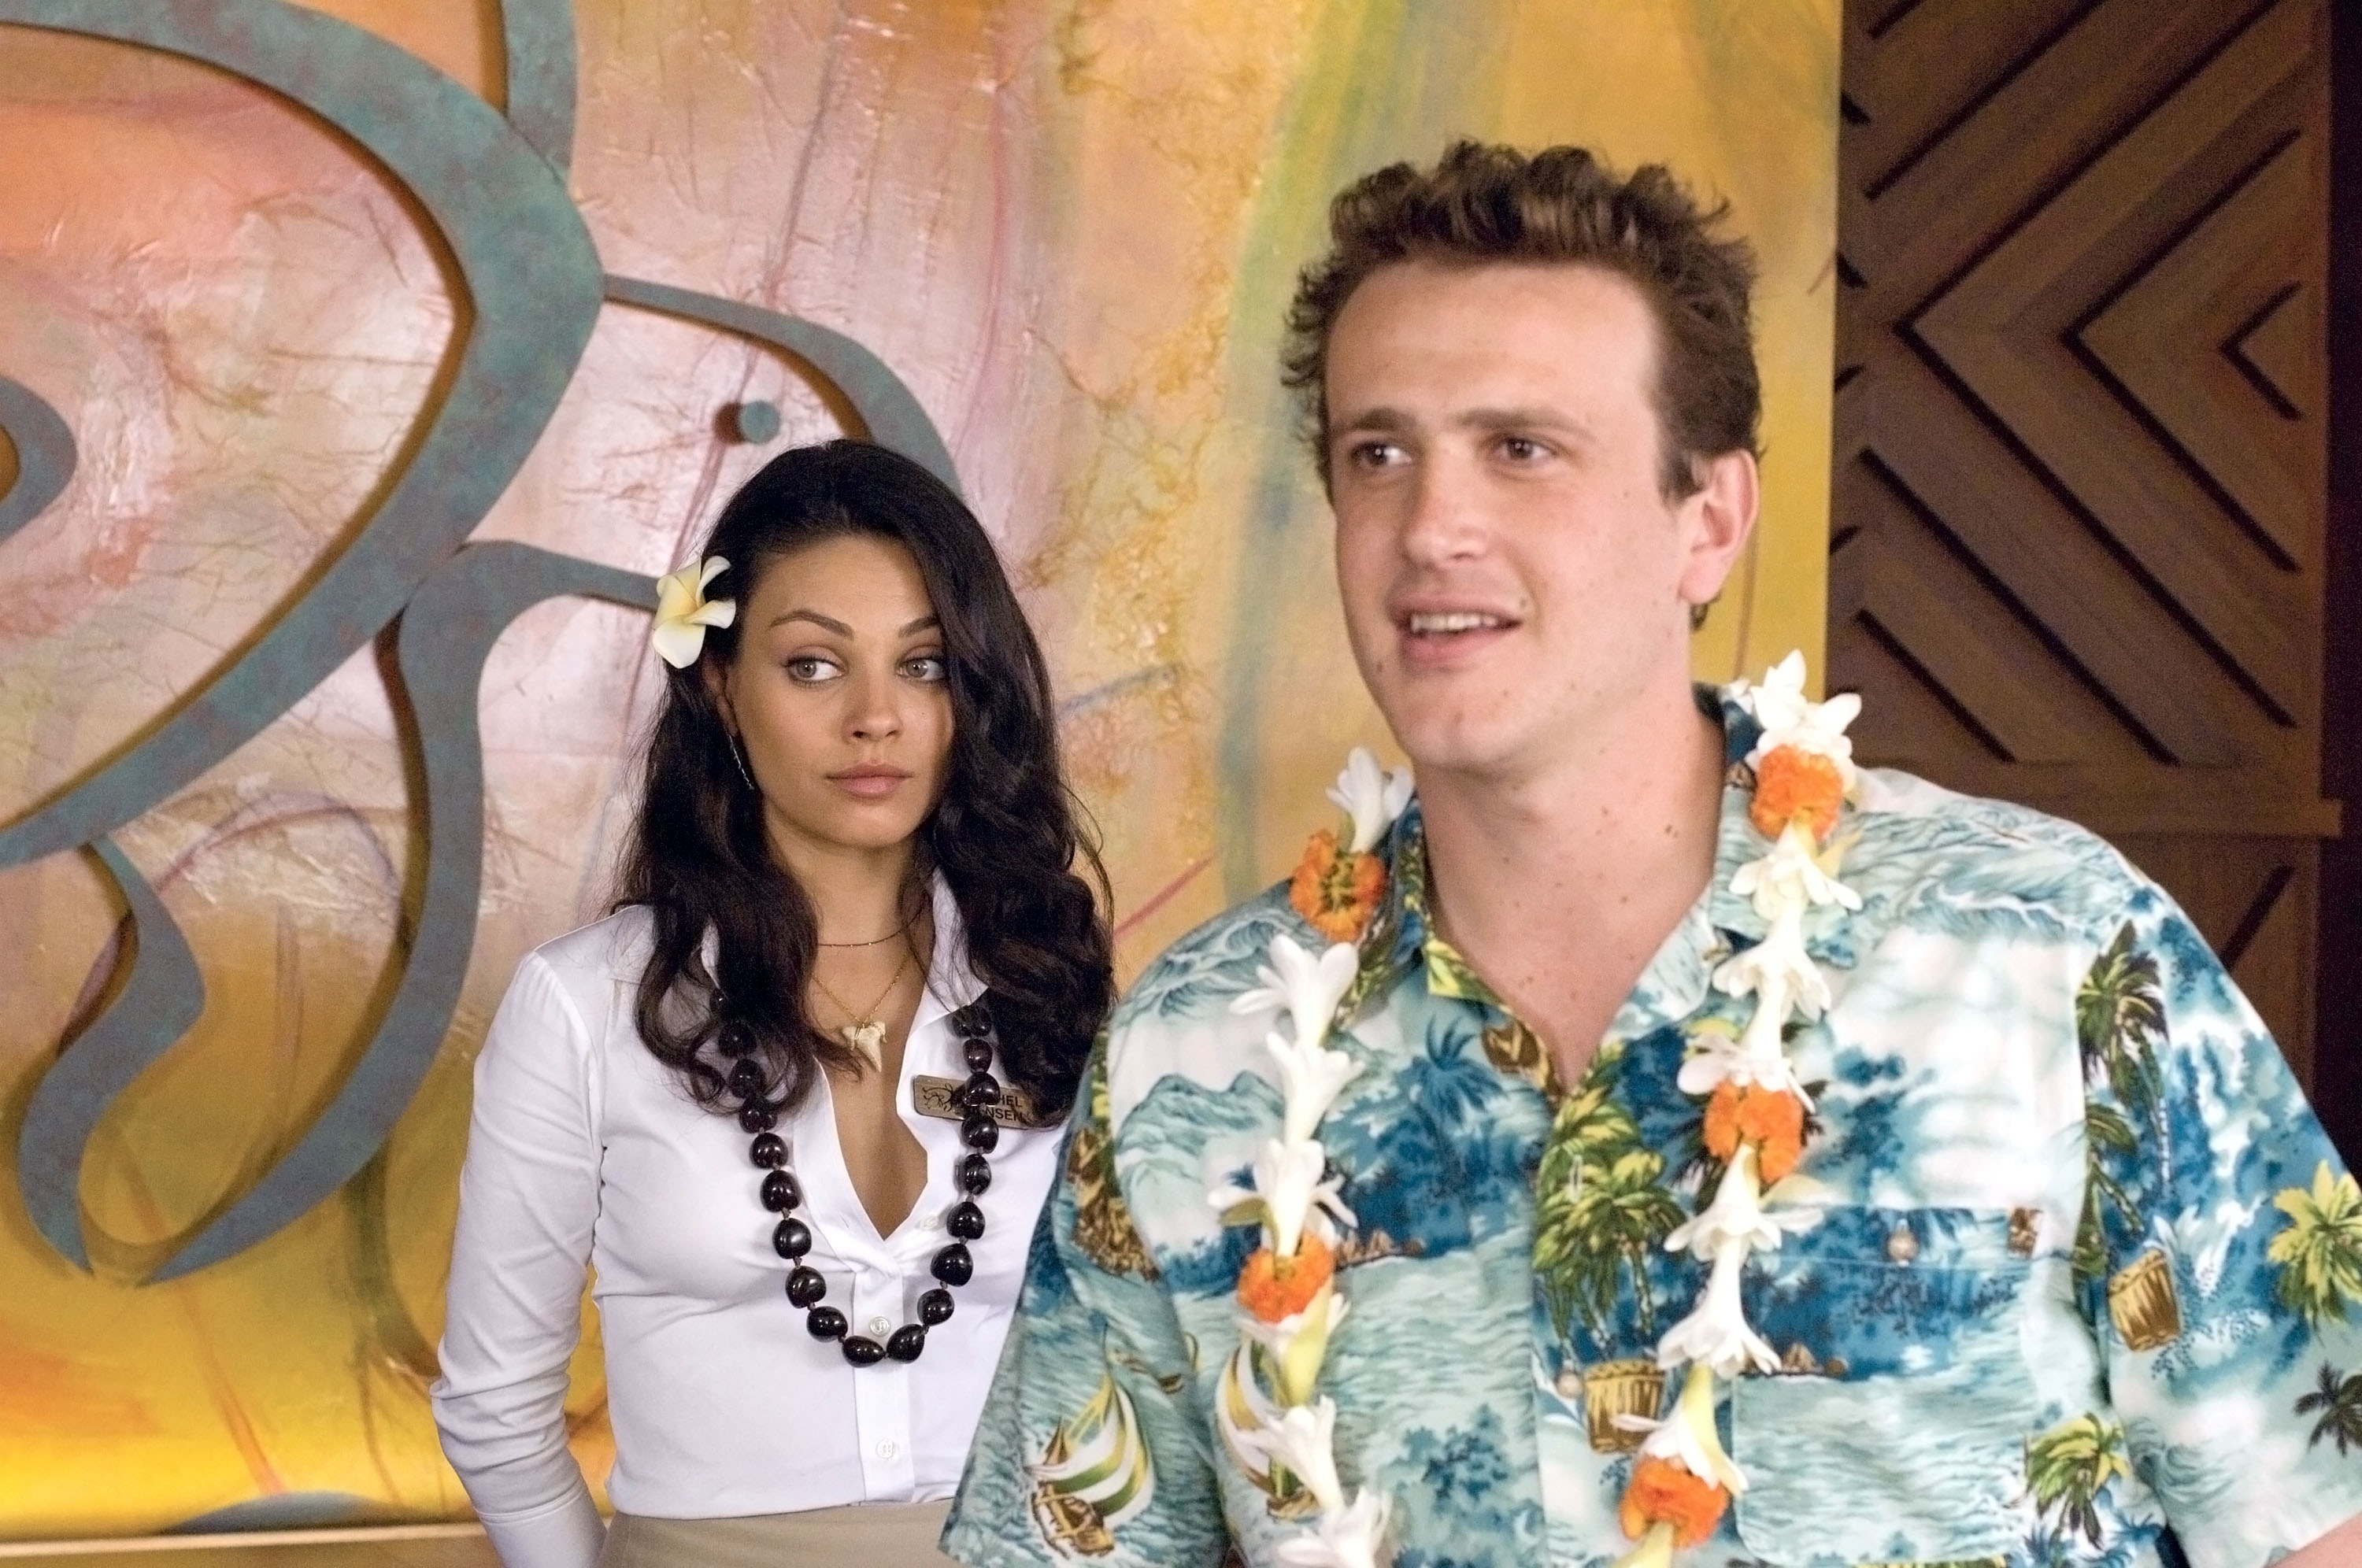 Mila Kunis and Jason Segel wearing tropical clothes